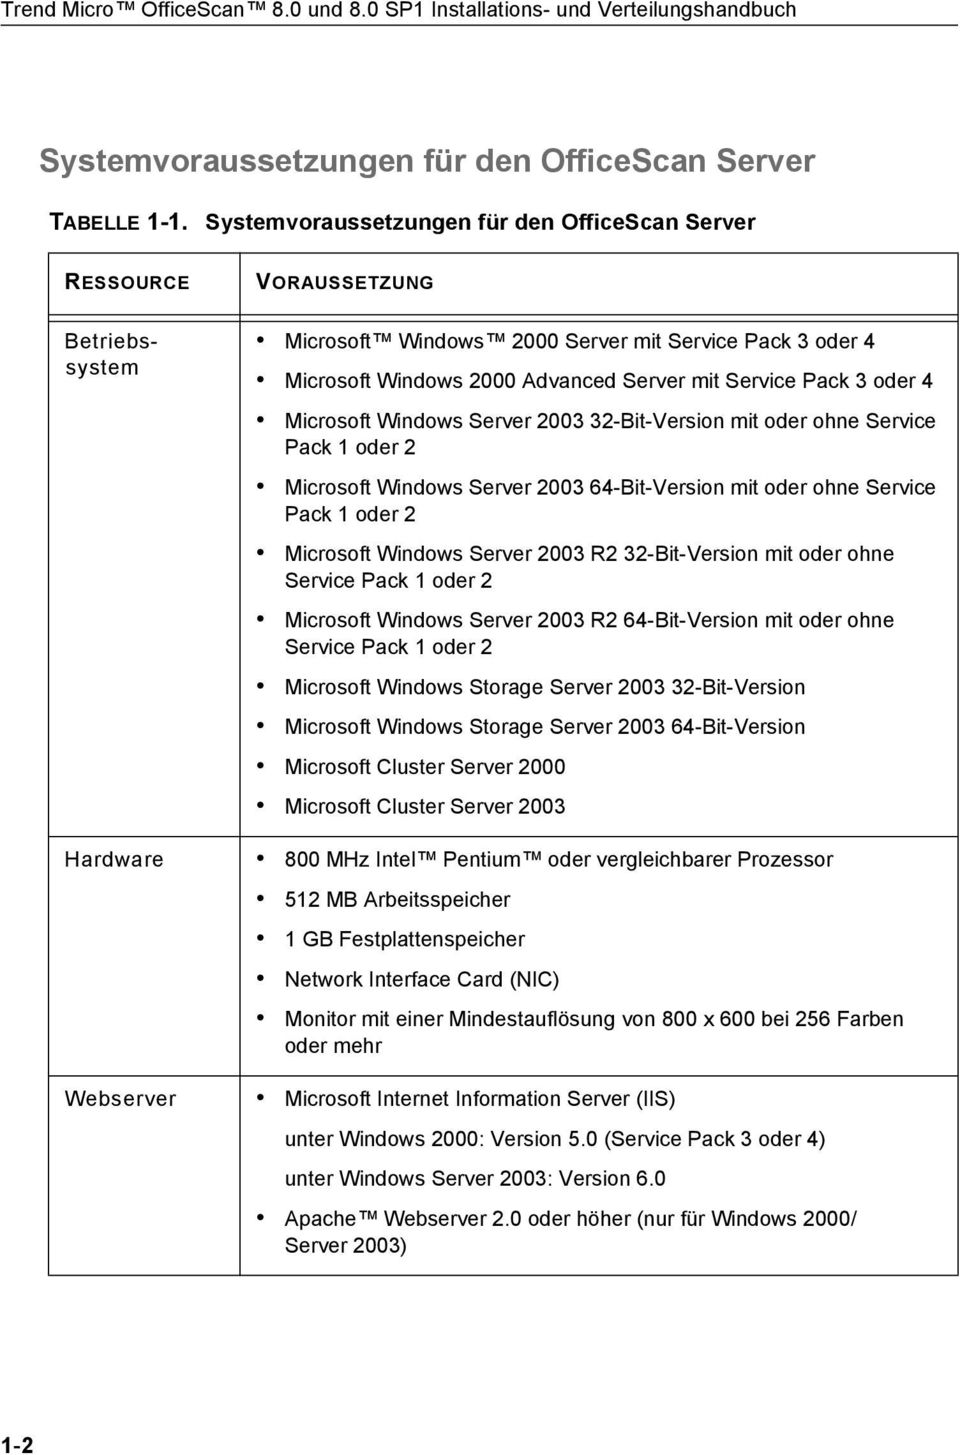 Server mit Service Pack 3 oder 4 Microsoft Windows Server 2003 32-Bit-Version mit oder ohne Service Pack 1 oder 2 Microsoft Windows Server 2003 64-Bit-Version mit oder ohne Service Pack 1 oder 2